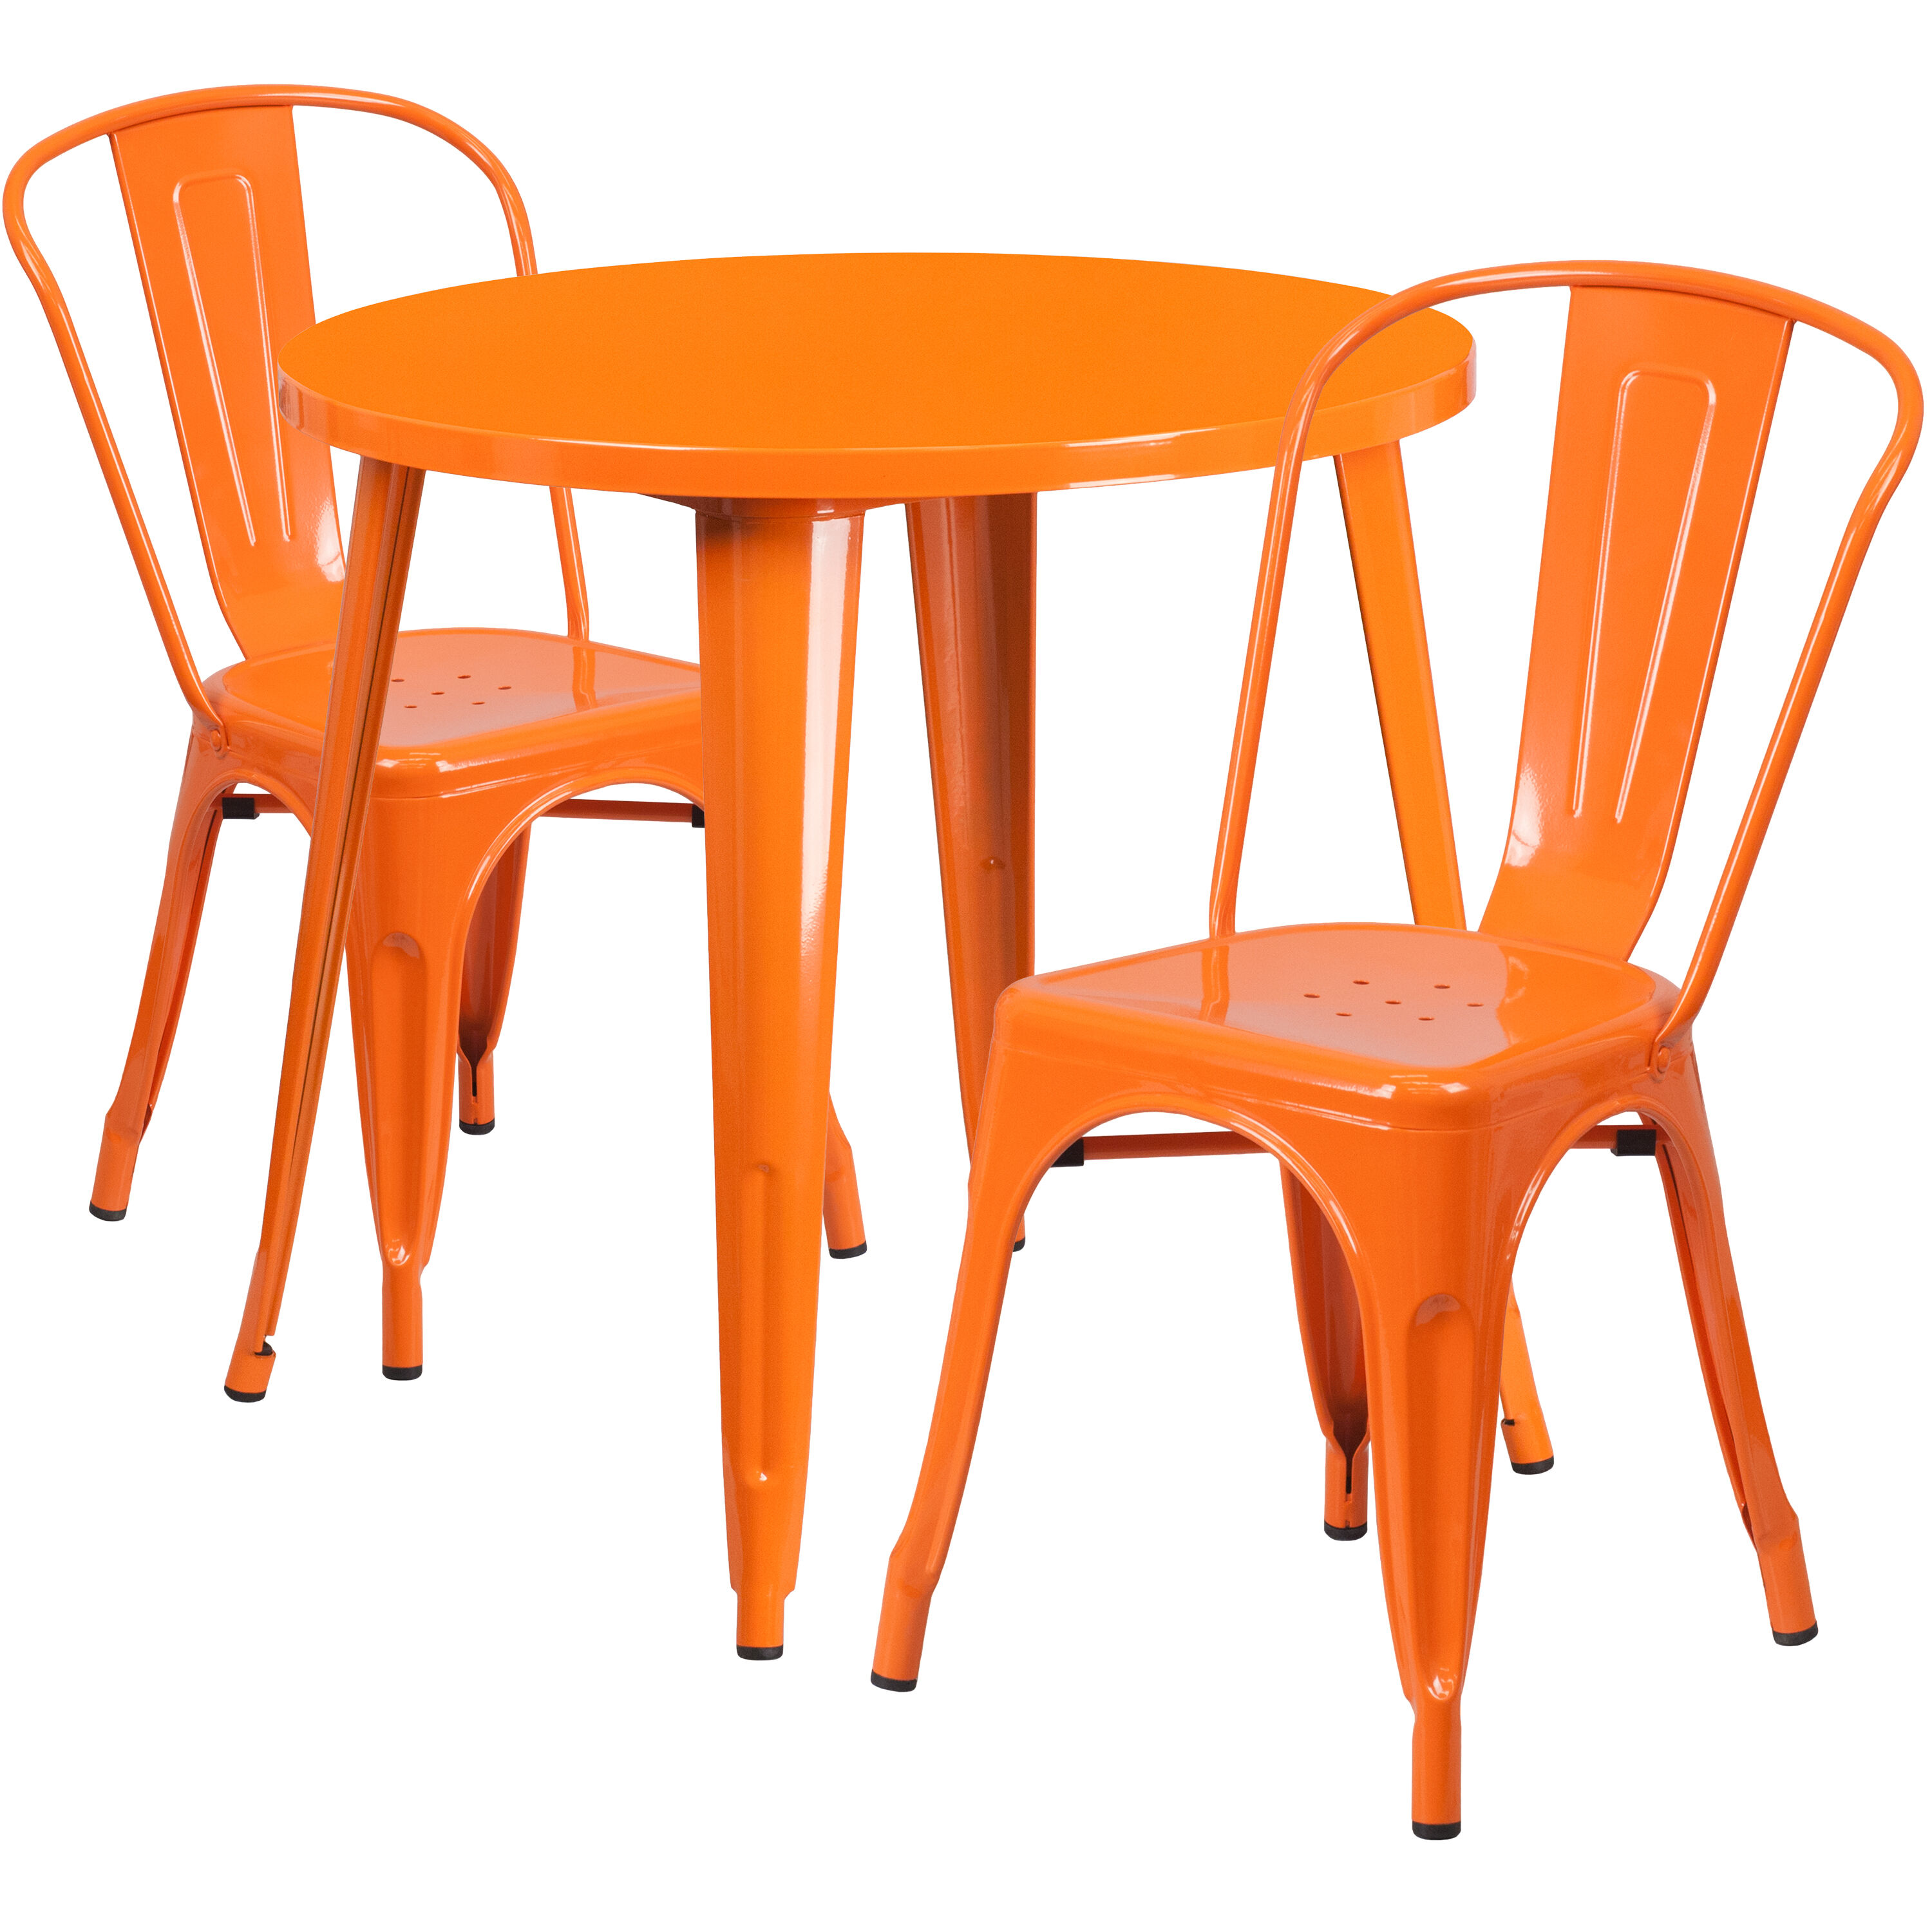 orange cafe chairs bloom fresco high chair 30rd metal set ch 51090th 2 18cafe or gg